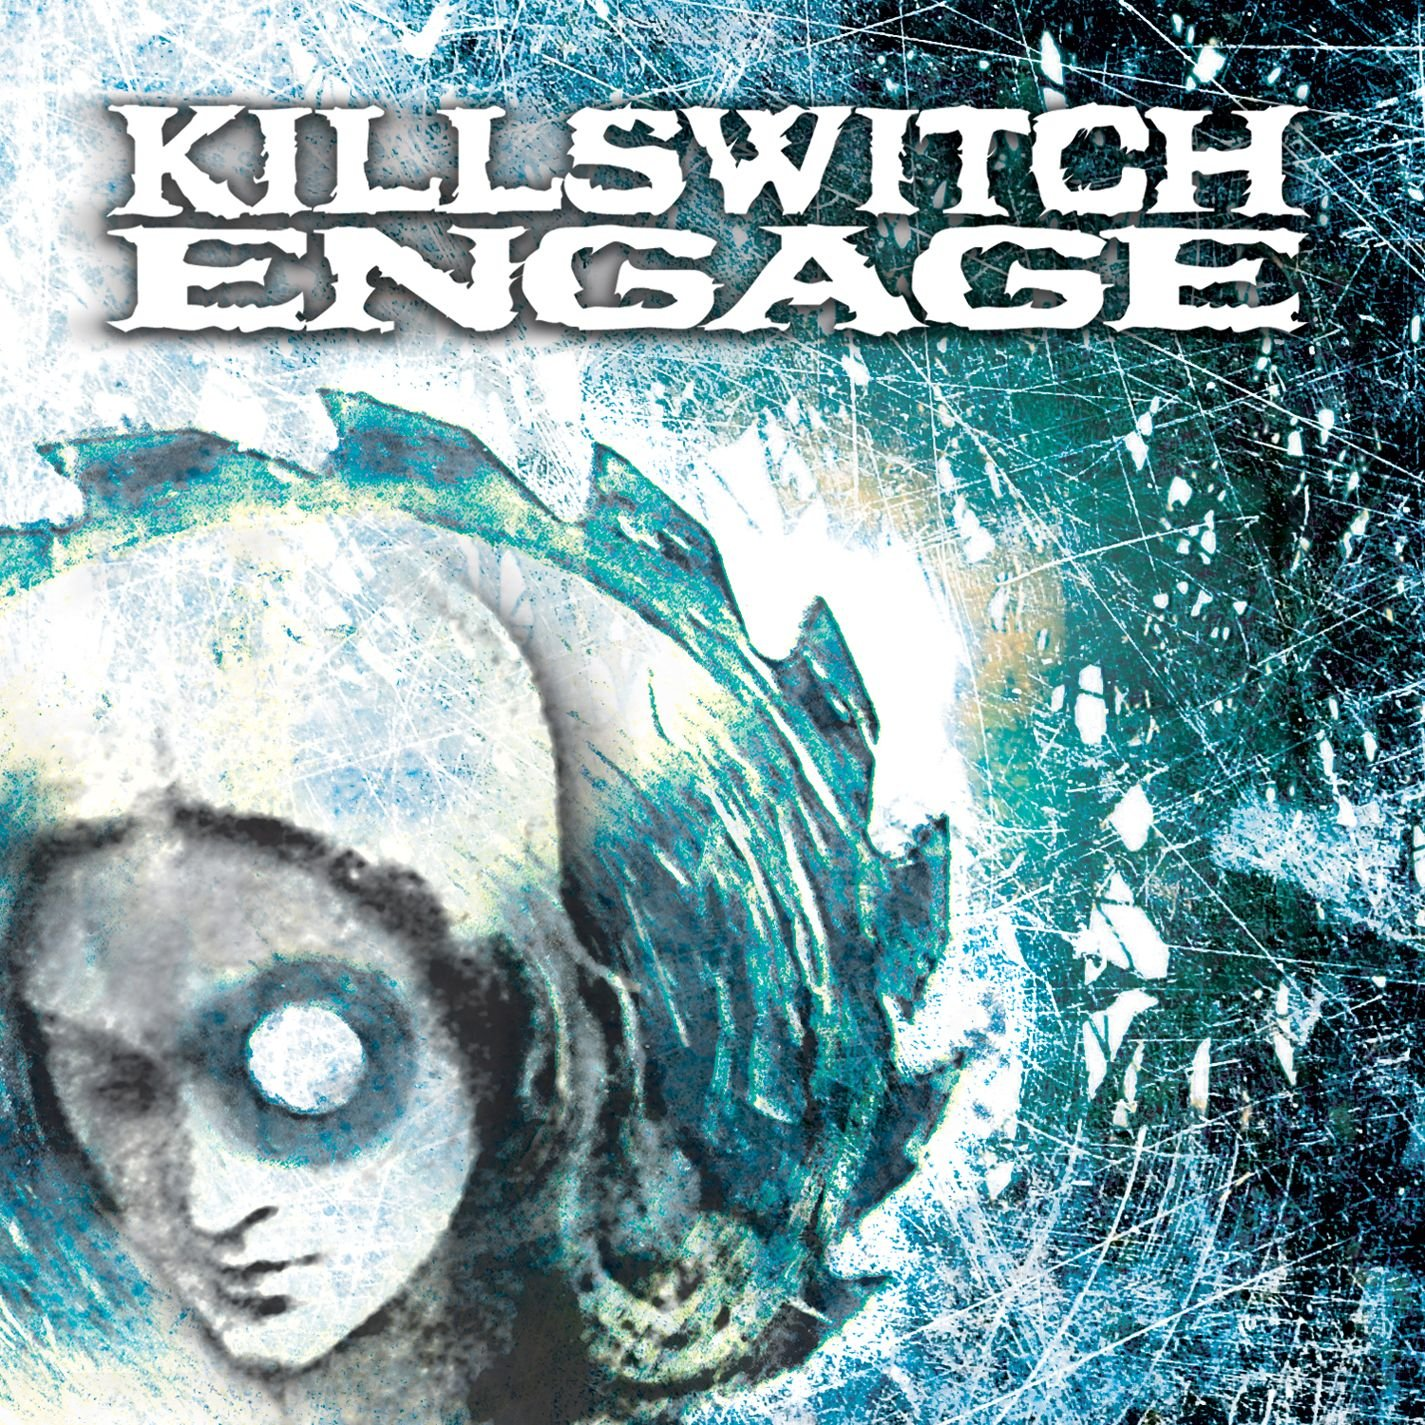 Killswitch Engage debut